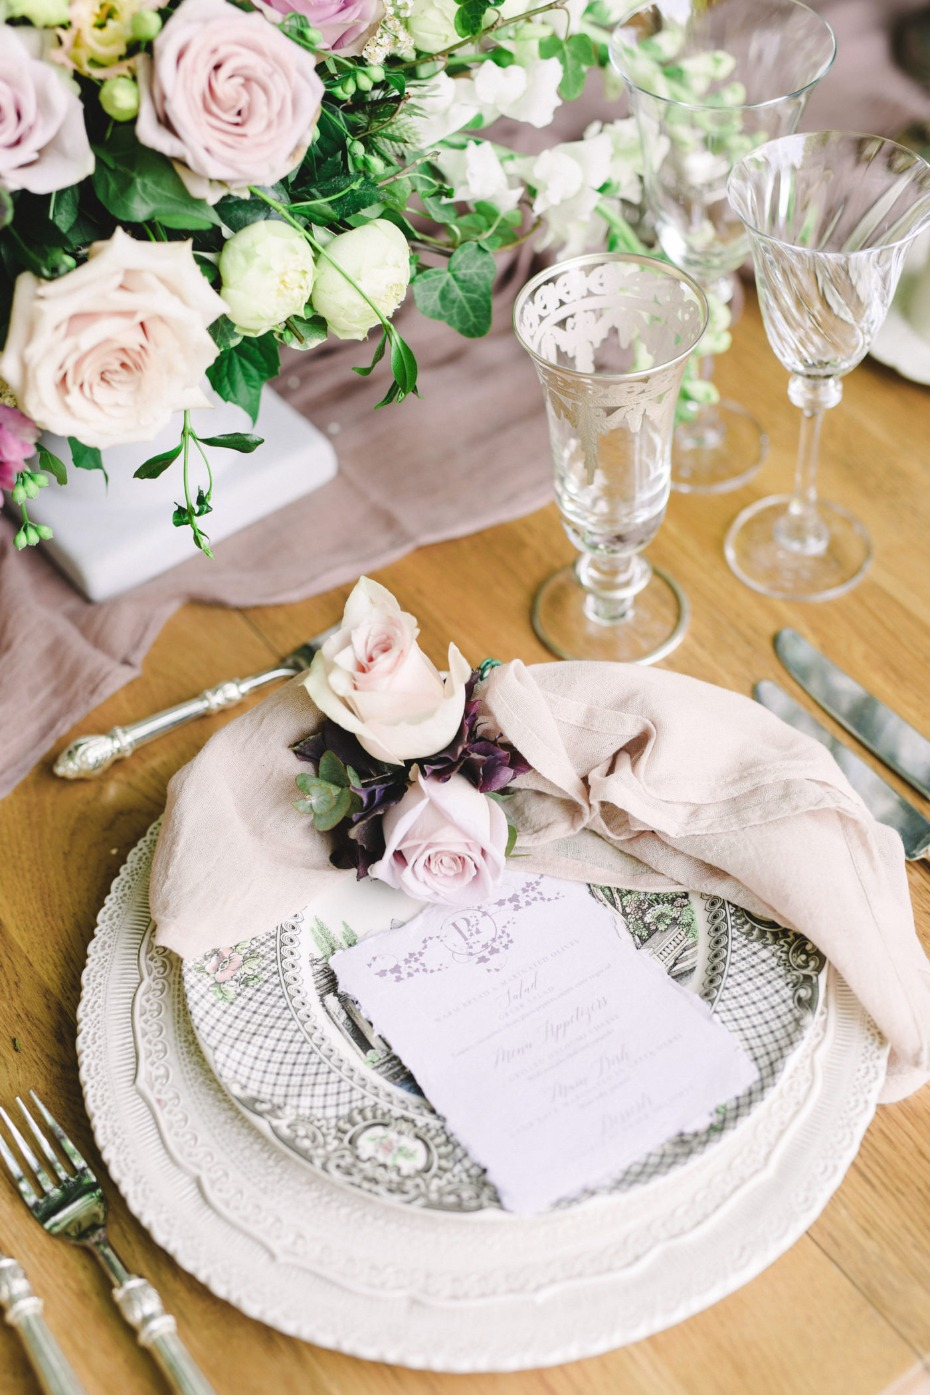 Vintage table decor for a wedding